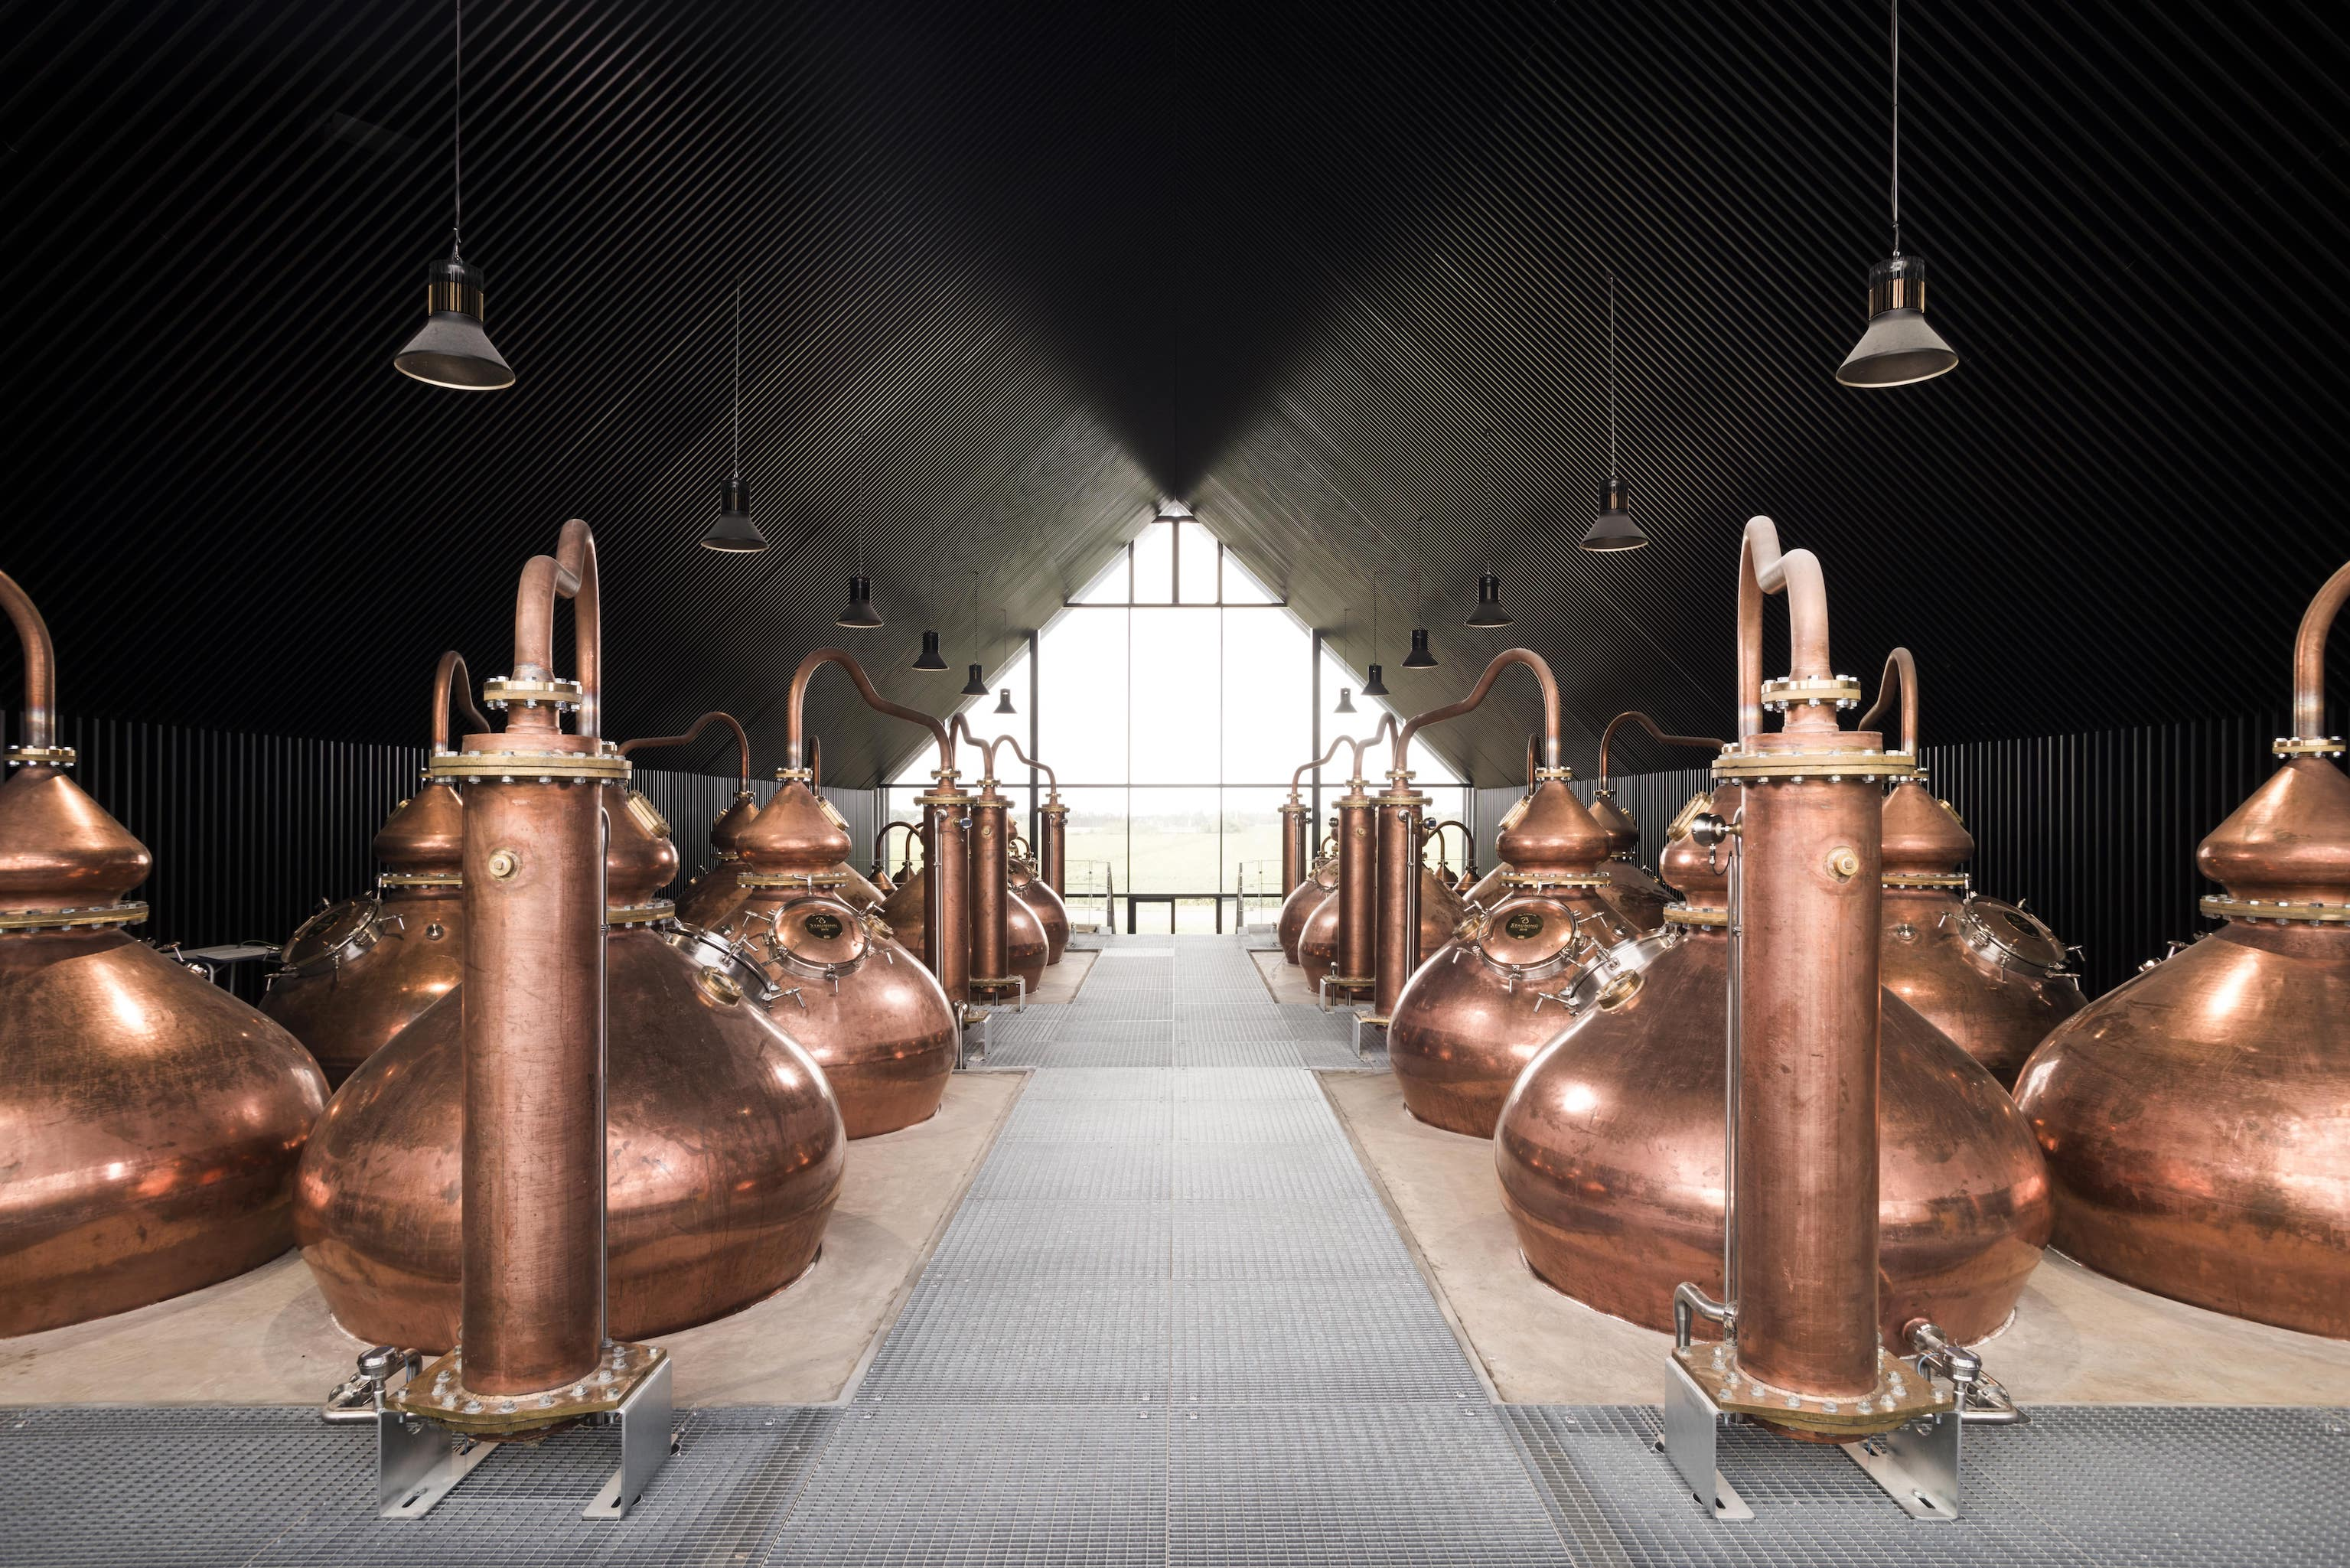 Virtual Distillery Tour and Tasting with Stauning Whisky